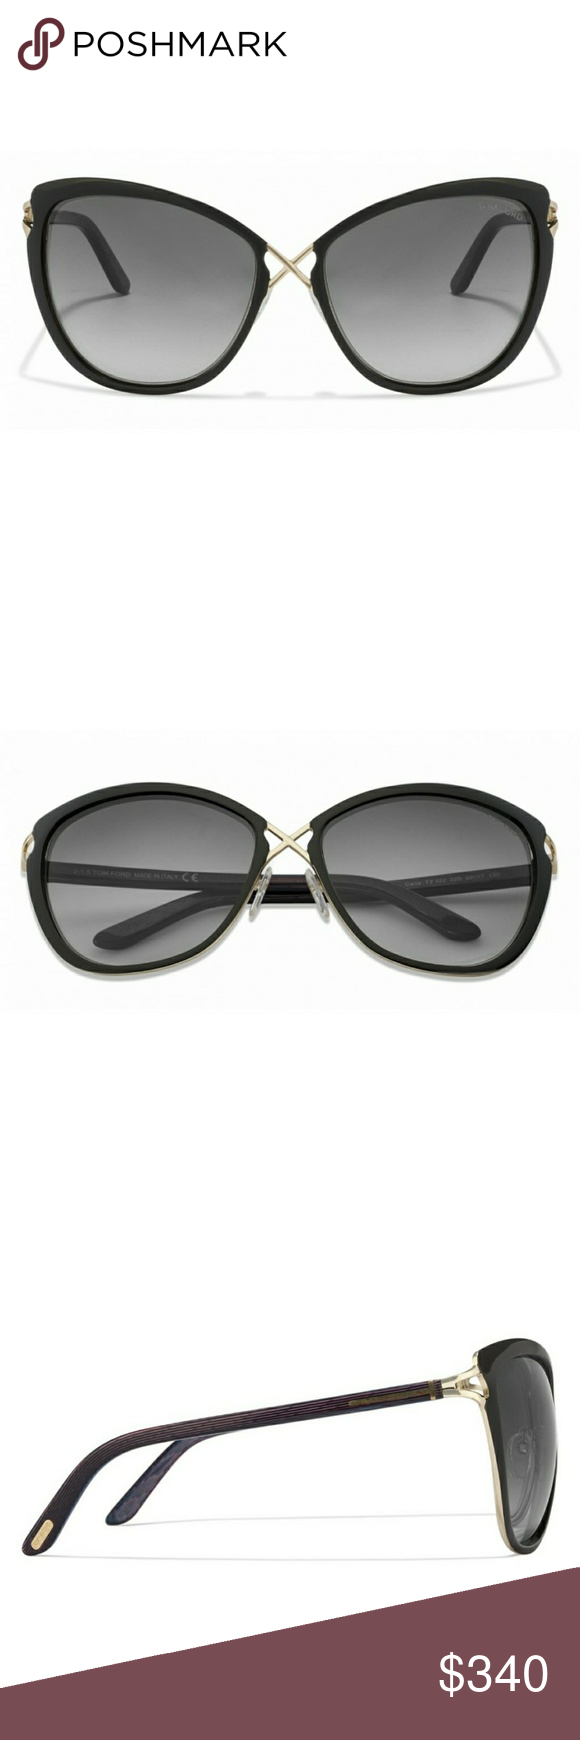 Authentic Tom Ford Women s sunglasses with case Black Golden Pink Blue  Gradient 32B Women s Sunglasses. cb0a13379714